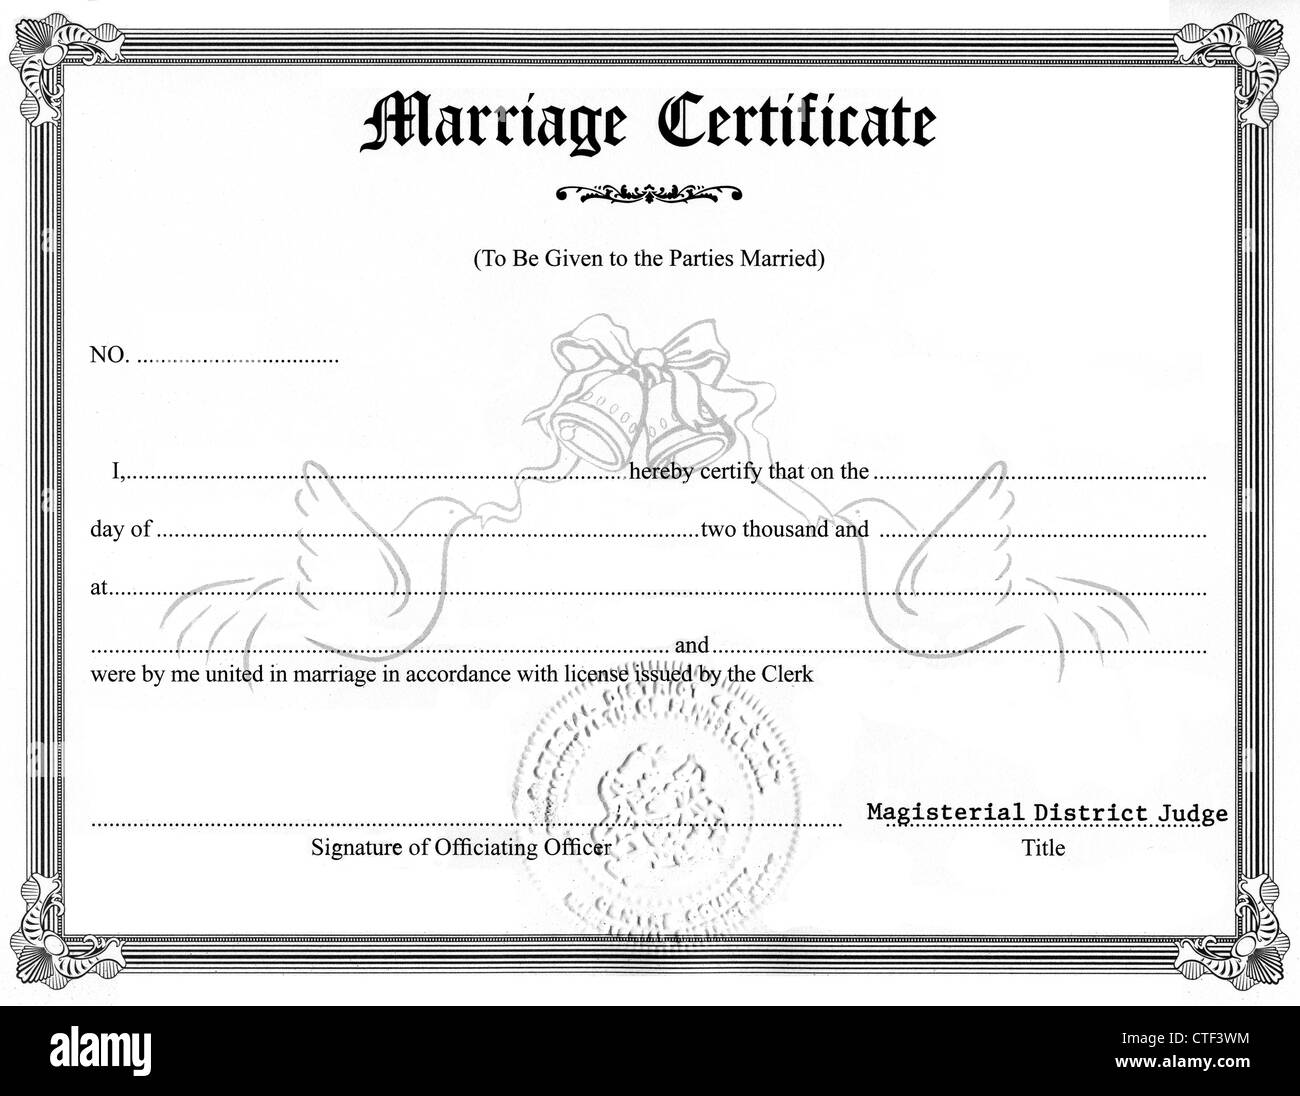 Marriage Certificate Stock Photos Marriage Certificate Stock